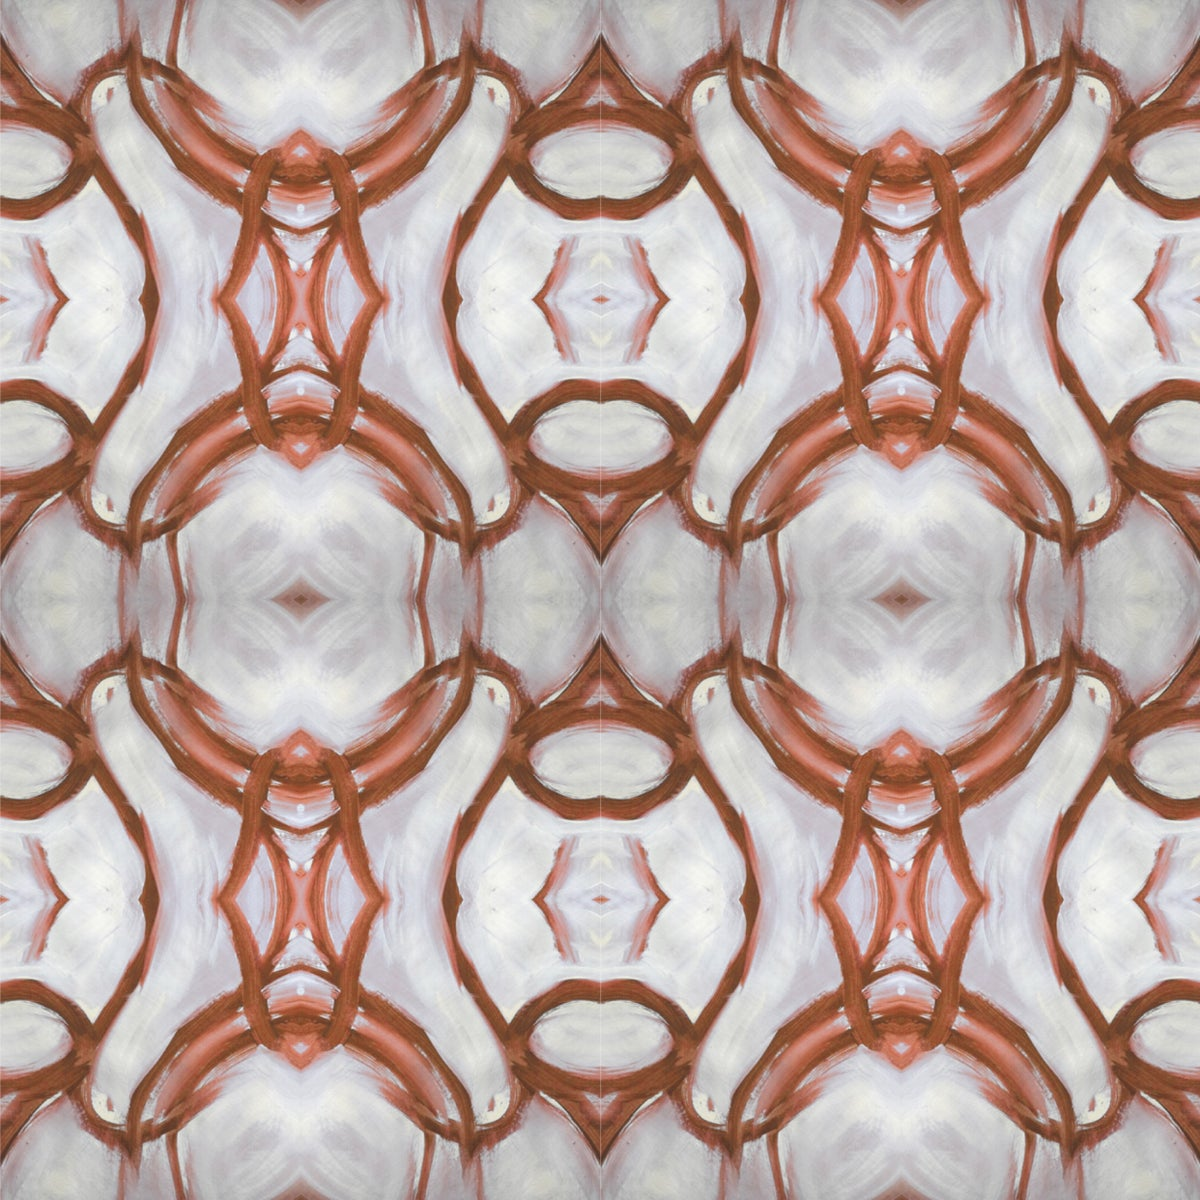 Image of 4002-B Wallpaper/Fabric